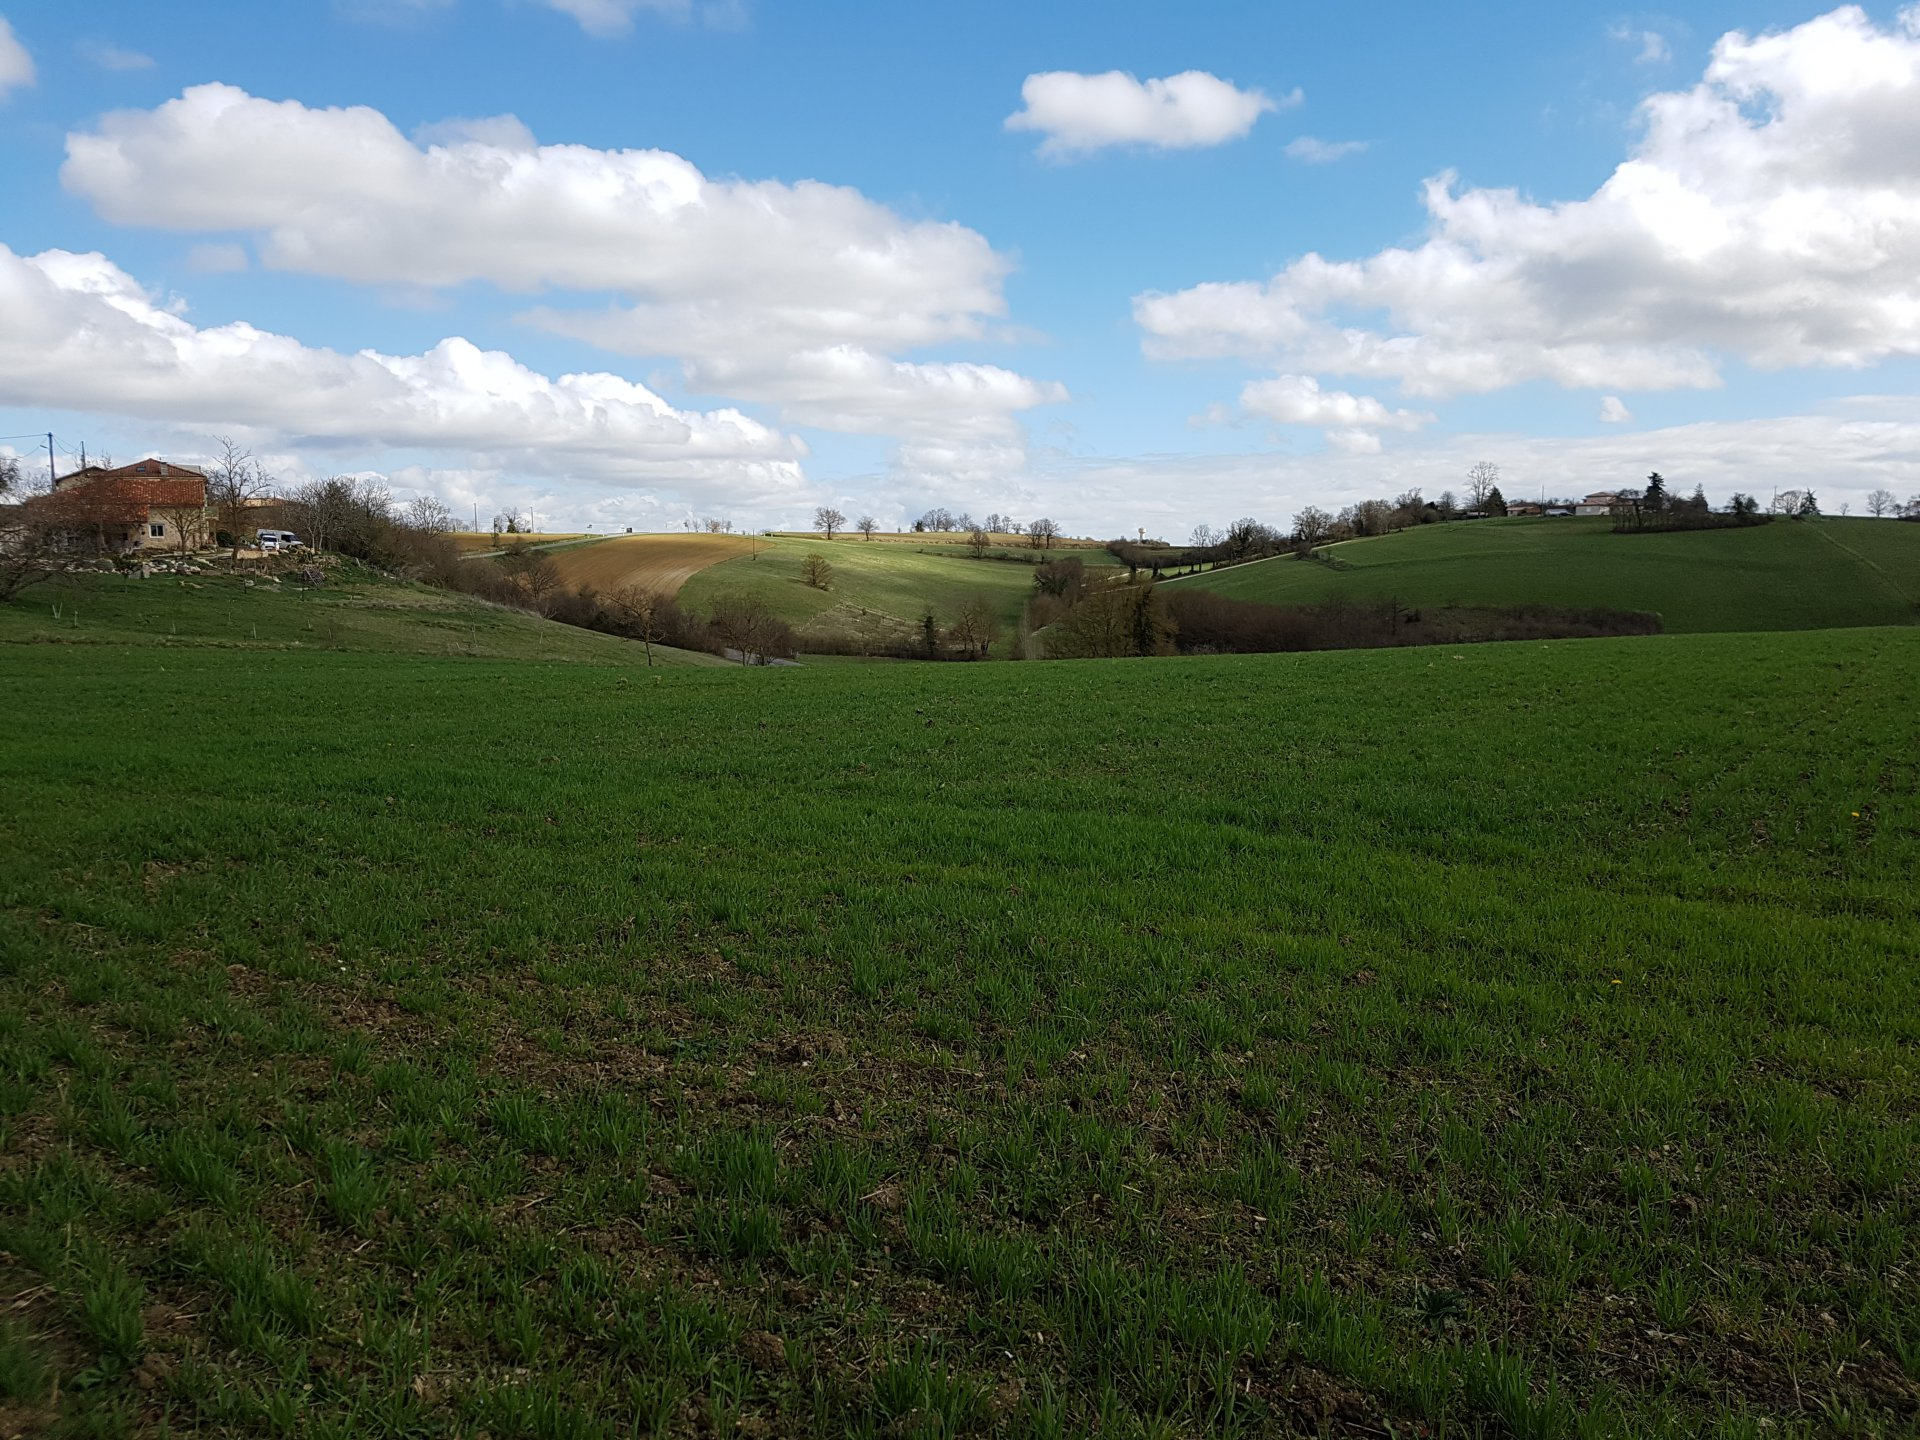 In Boussan, building plot of 2300 m² with superb Pyrenees views